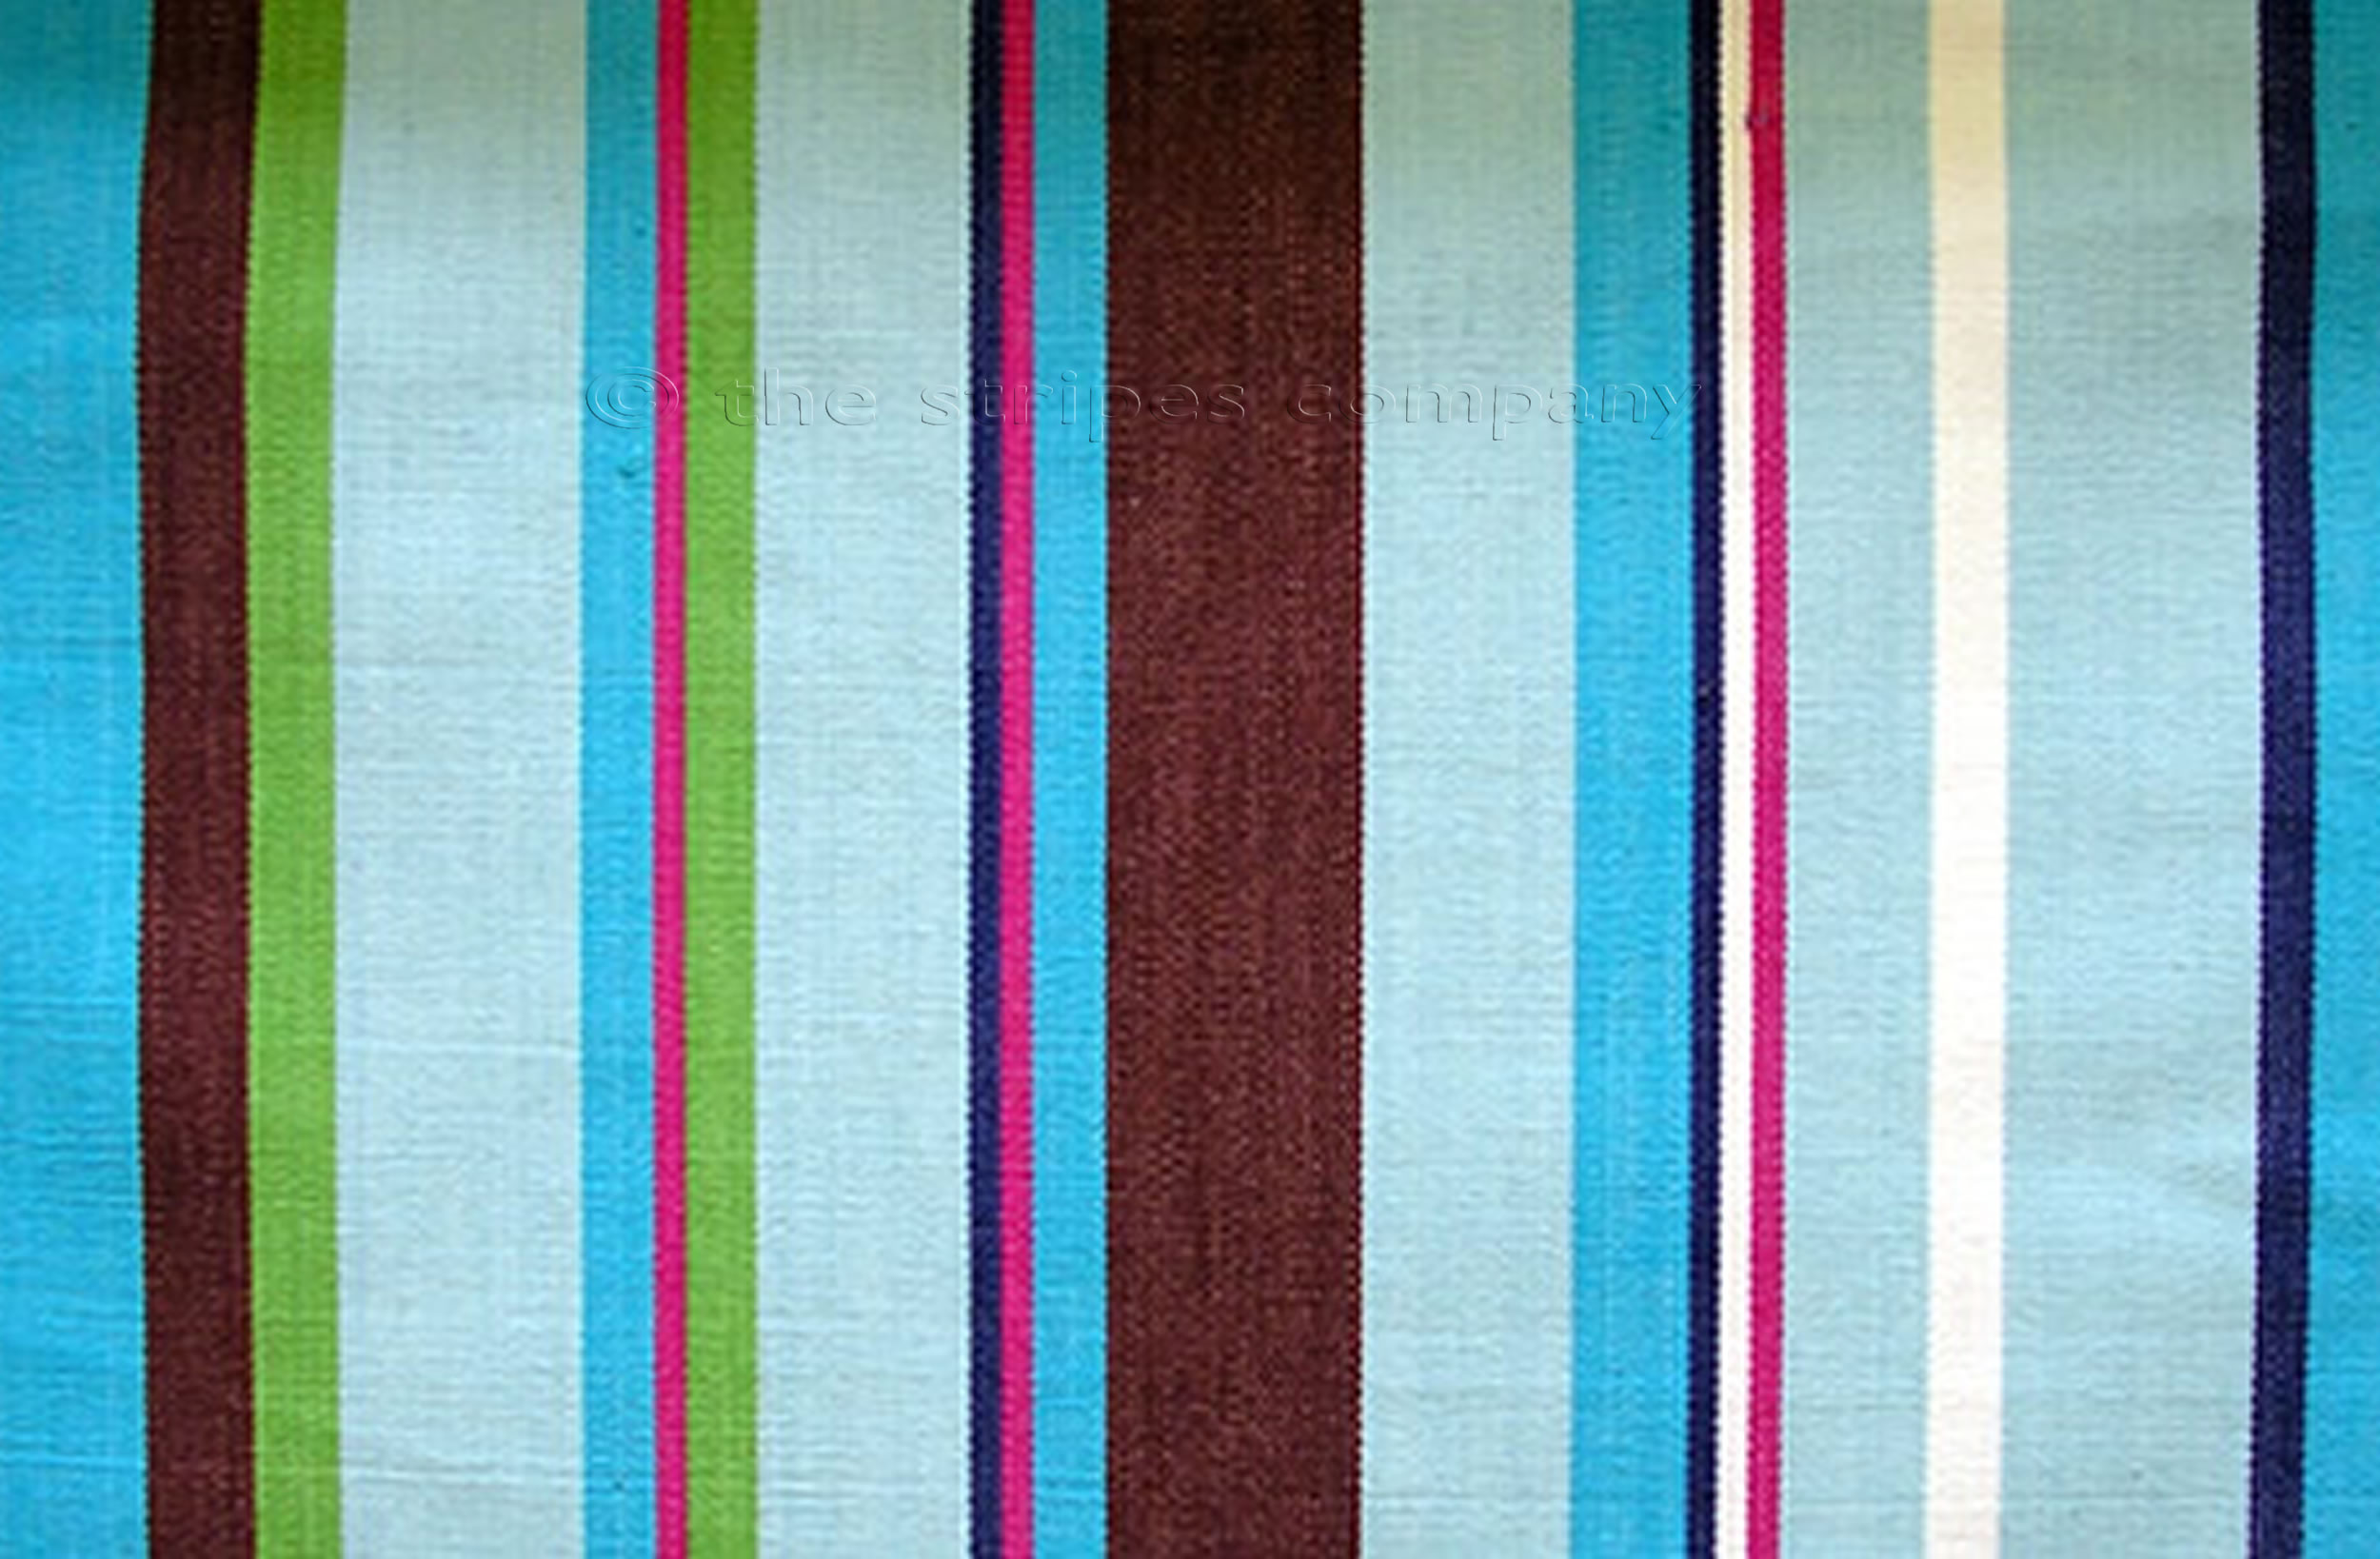 turquoise, pale blue, brown - Wipe Clean Fabrics | Striped Water Repellent Fabrics